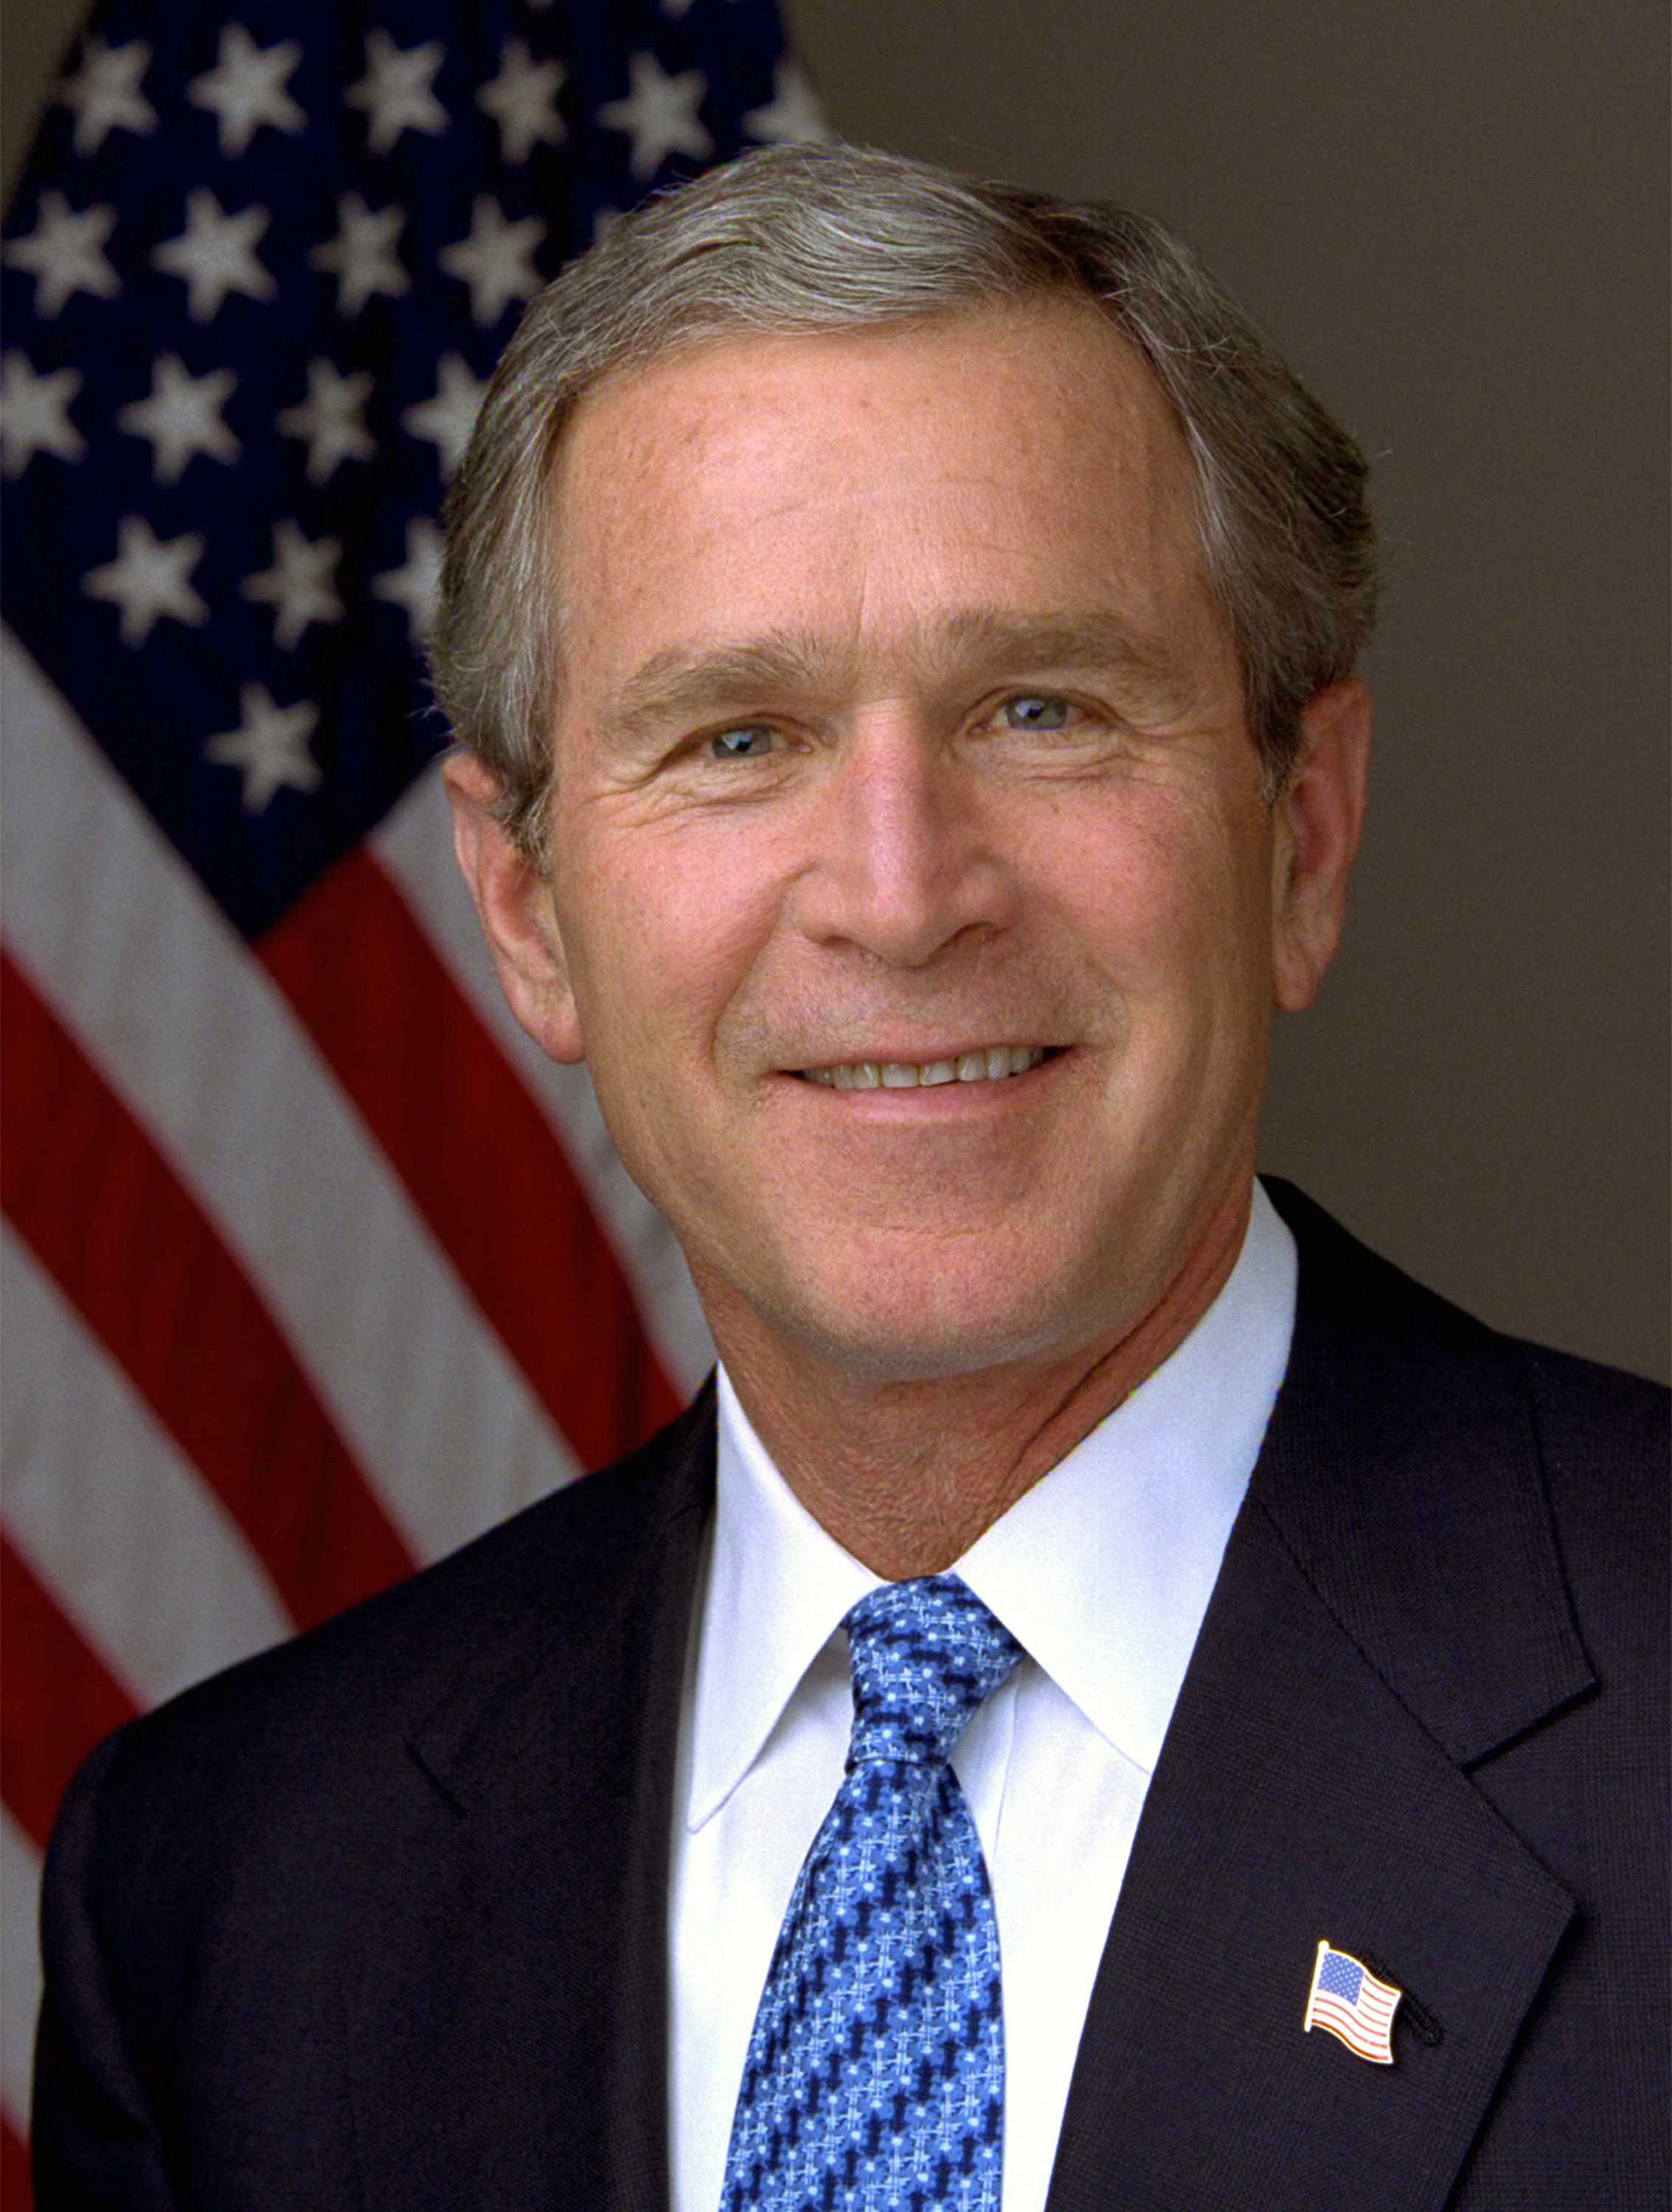 President George W. Bush Portrait. Photo by Eric Draper, White House/Wikimedia Commons